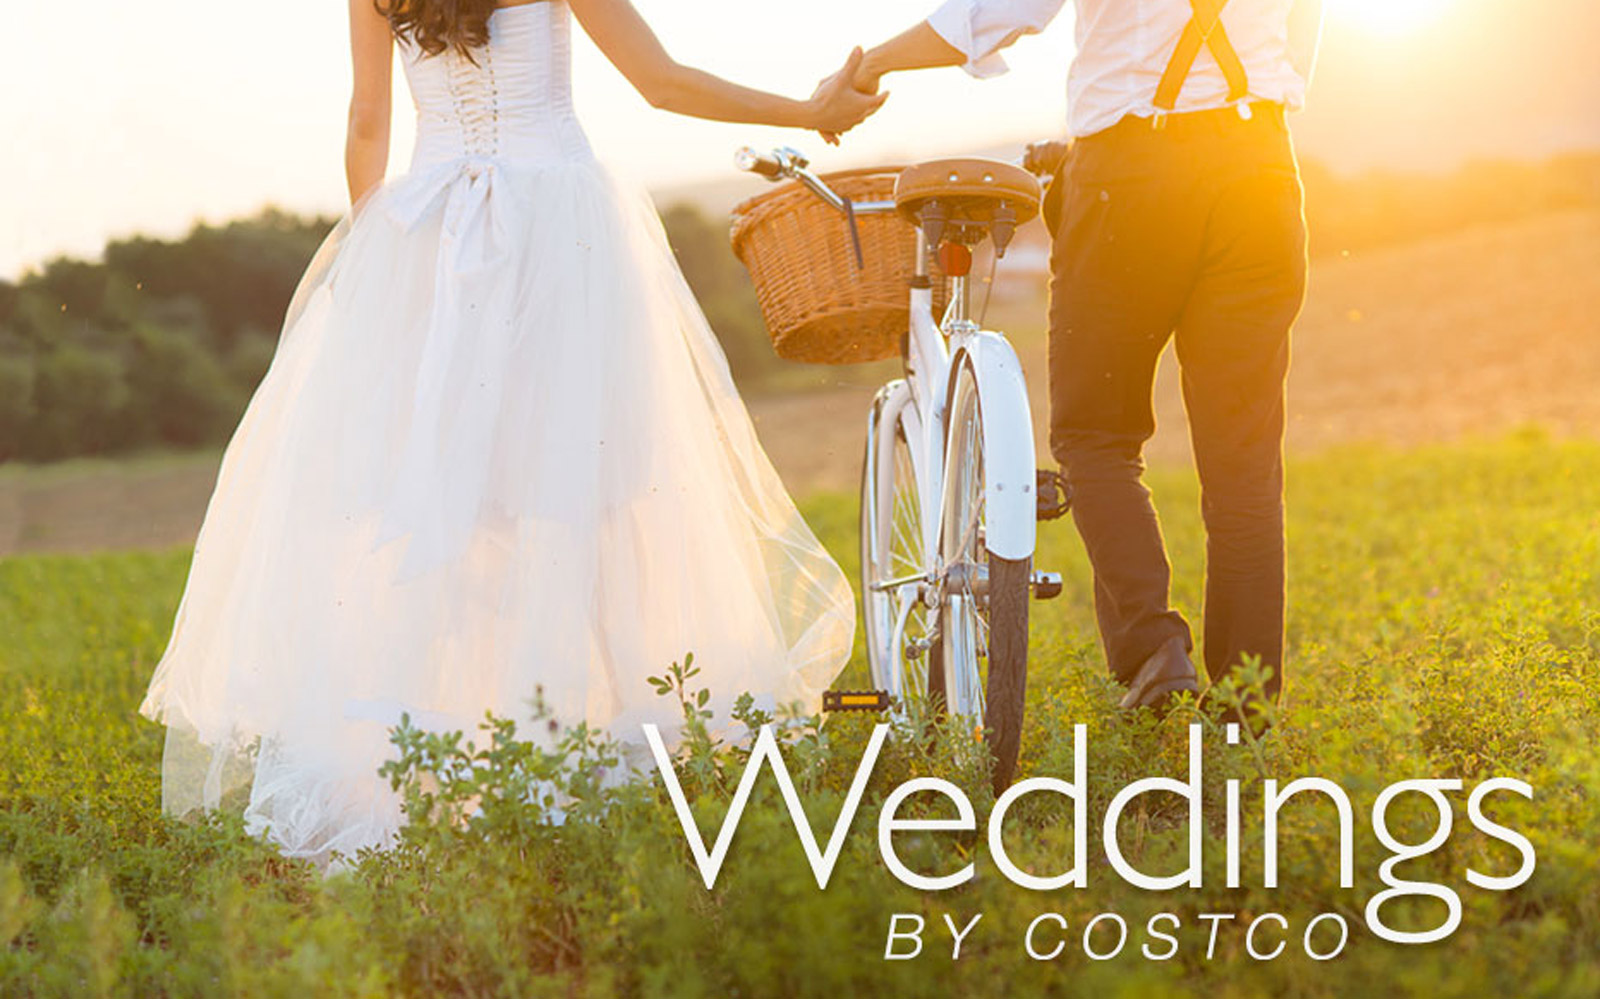 Costco's Wedding Products